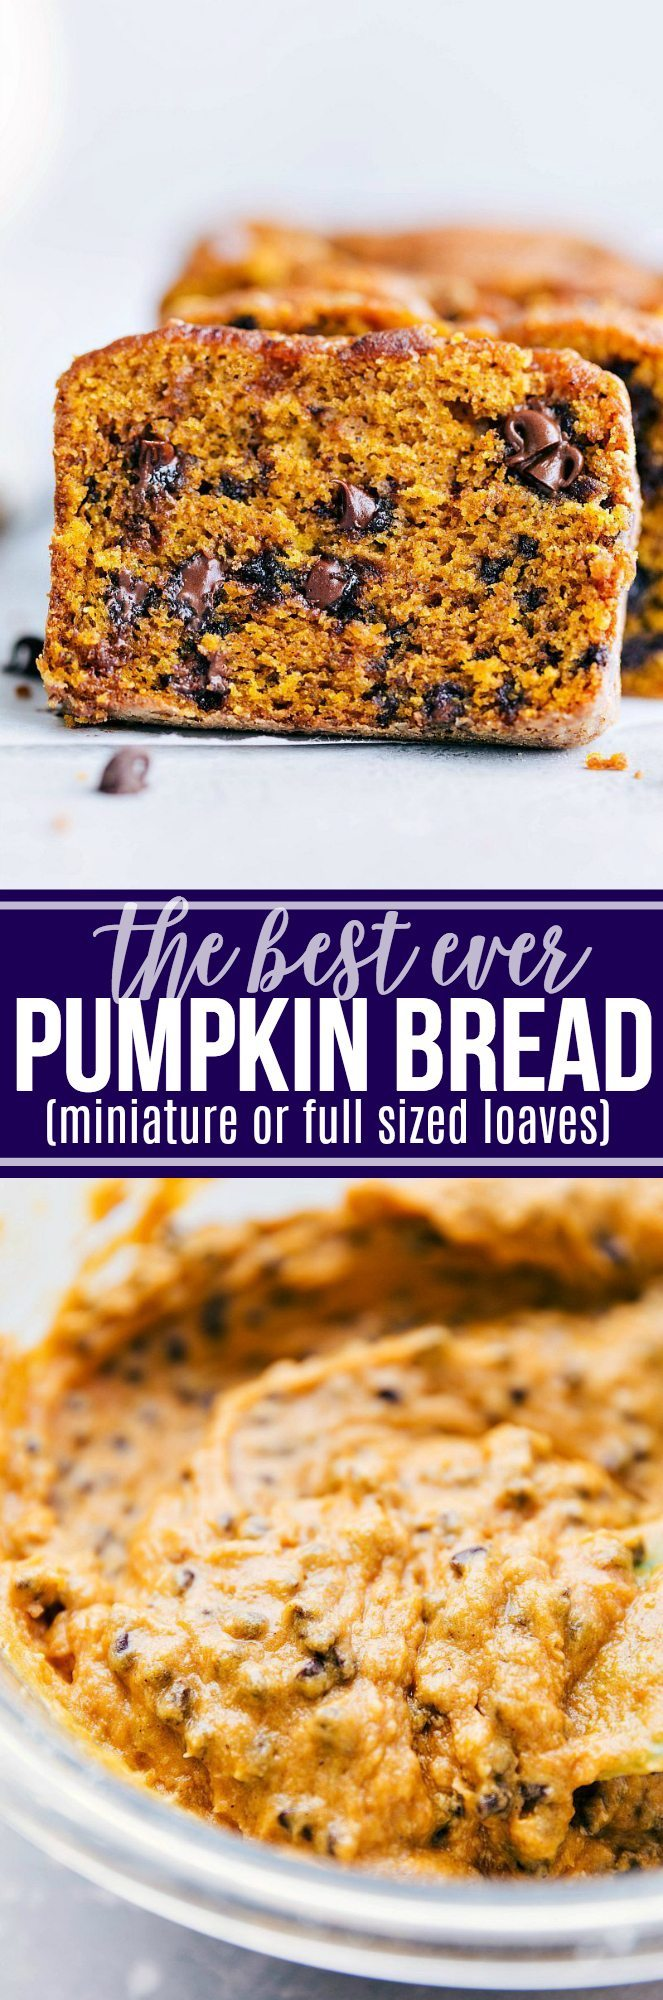 This is the best-ever, tested-to-perfection, made-from-scratch, moist pumpkin bread stuffed with mini chocolate chips (or nuts/raisins). Directions for miniature or full sized loaves of bread. The miniature loaves are great for holiday gift-giving! | chelseasmessyapron.com | #pumpkin #bread #best #ever #mini #miniature #chocolatechips #fall #baking #thanksgiving #easy #quick #kidfriendly